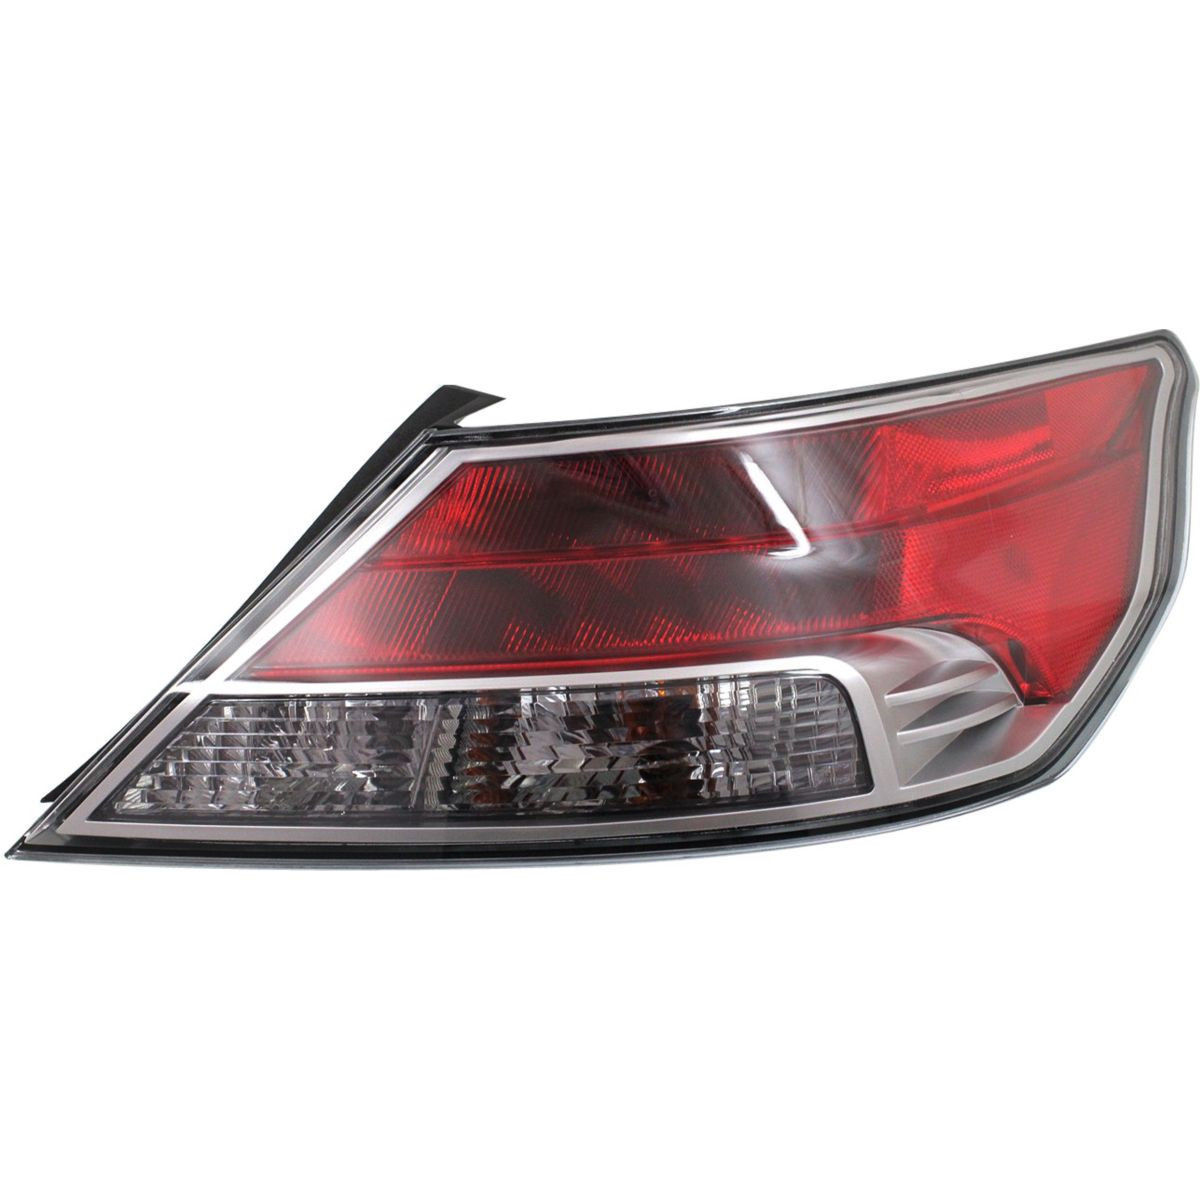 <B> New Tail Light Assembly Passenger Side Fits 2009-2011 Acura TL AC2801115 33500TK4A02 </B>